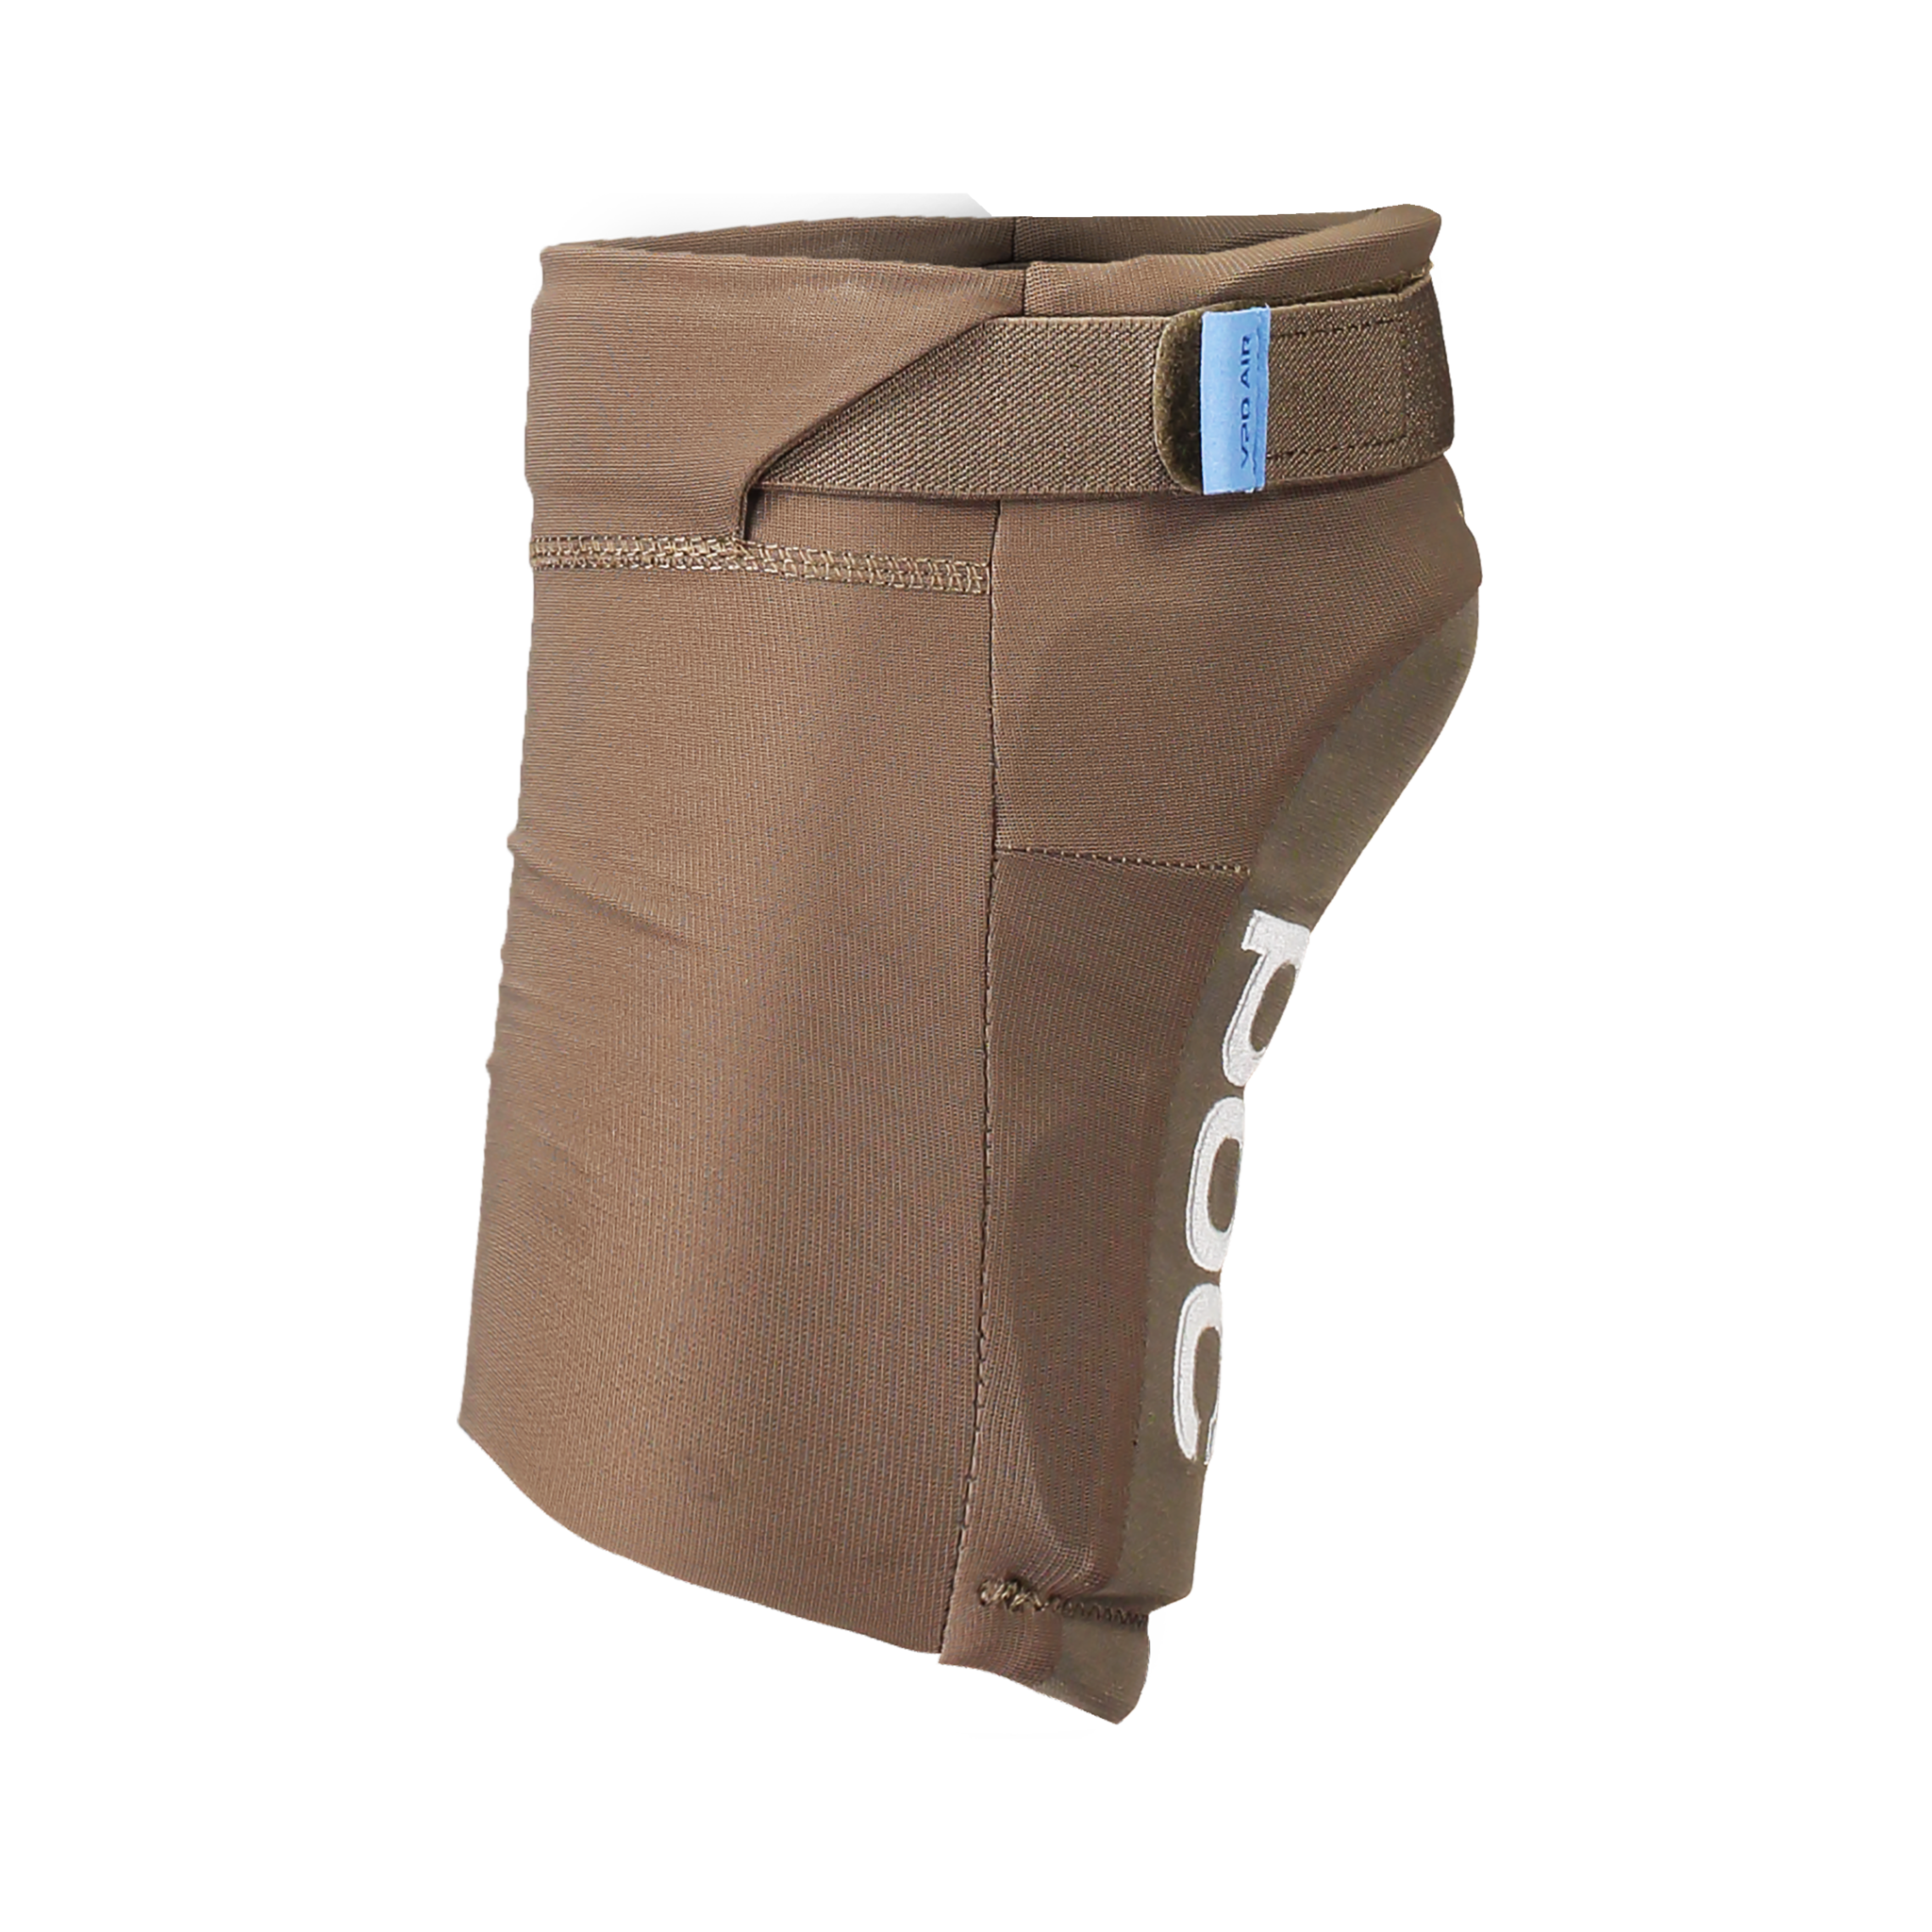 POC Joint VPD Air Knee - Size L - Tan-4